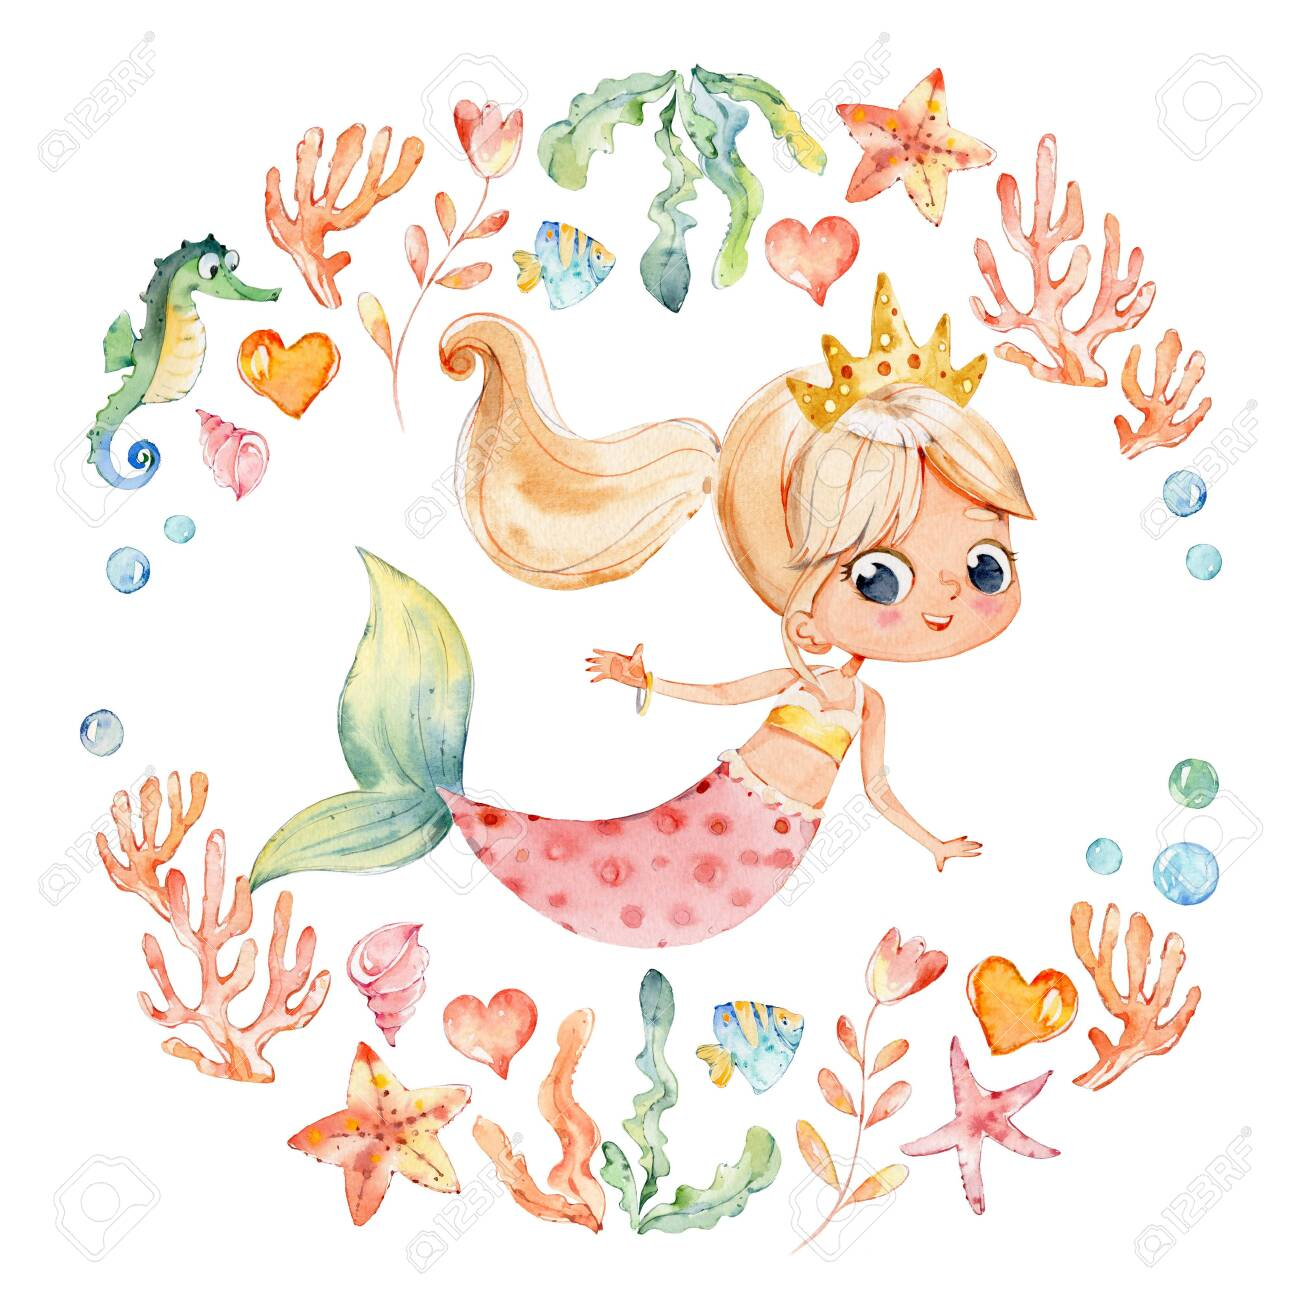 Mermaid Watercolor Surrounded By Frame Of Sea Elements Sea Horse Stock Photo Picture And Royalty Free Image Image 124273463